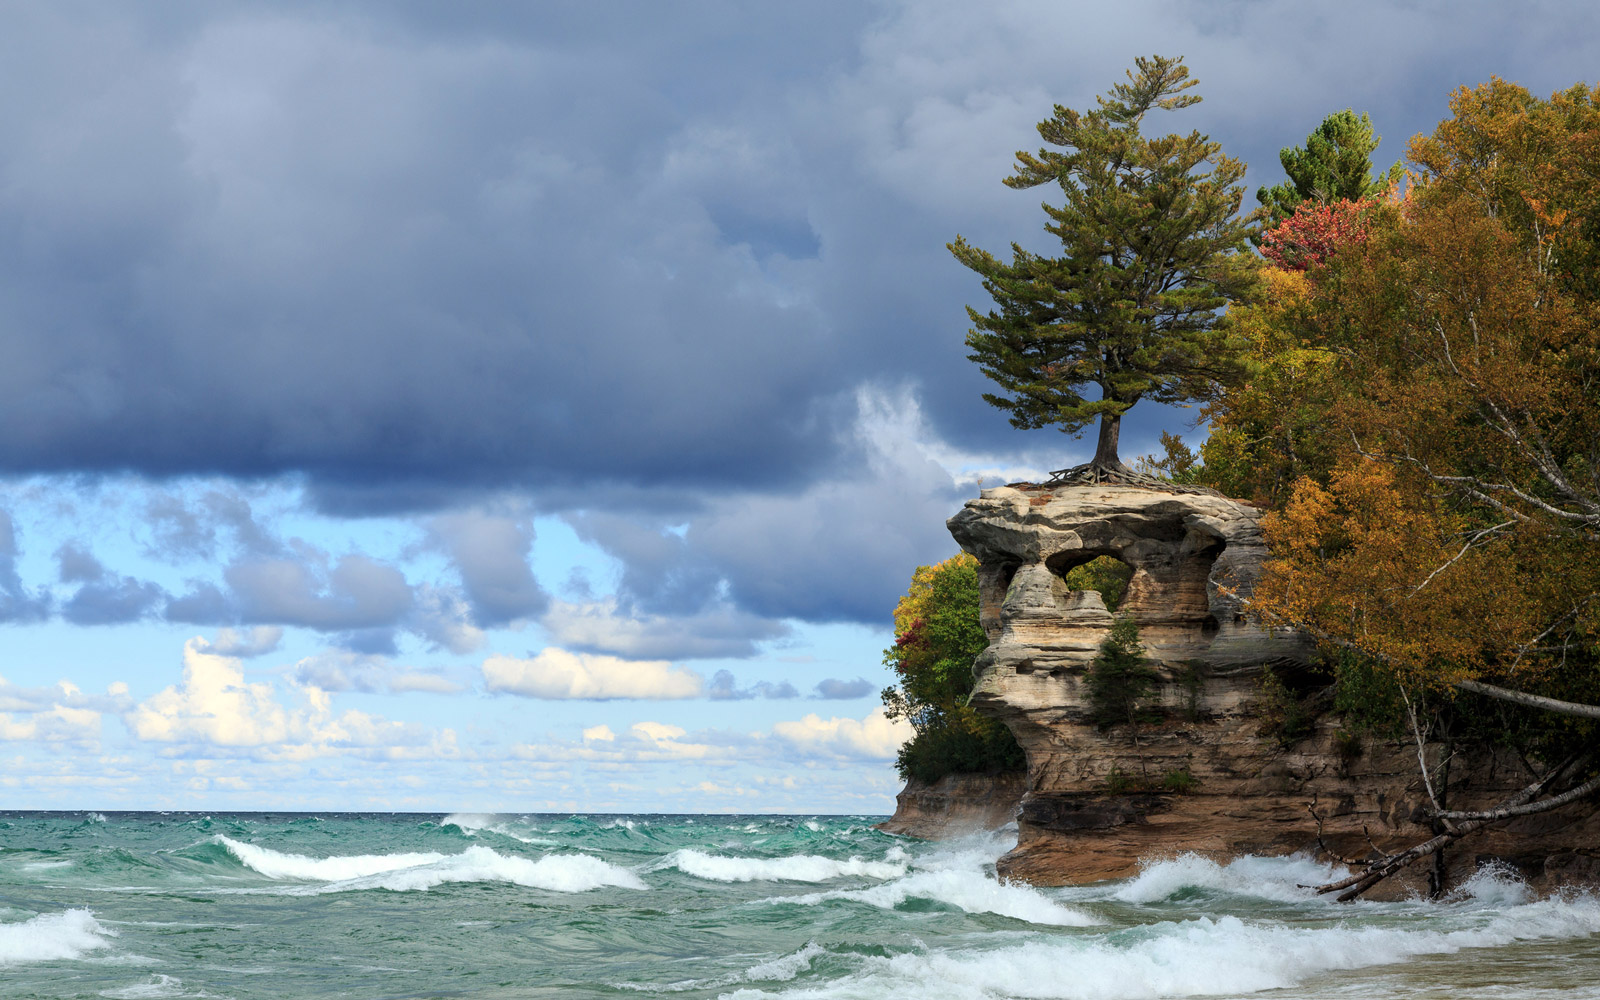 Chapel Rock is battered by crashing waves from Lake Superior at Pictured Rocks National Lakeshore in the Upper Peninsula of Michigan